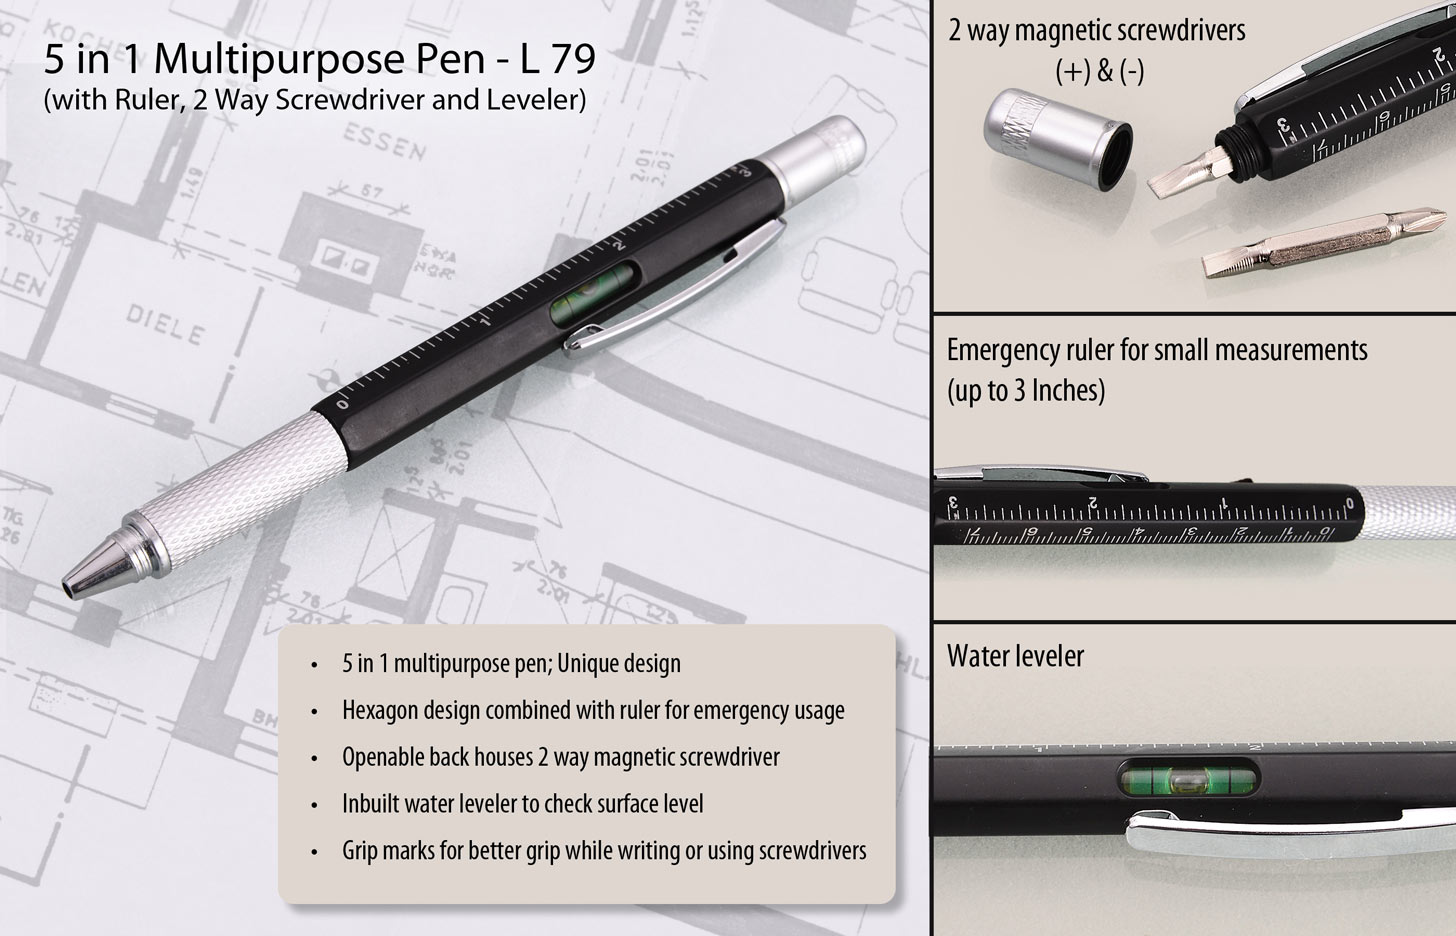 L79 - 5 in 1 Pen with ruler, 2 way screwdriver and leveler